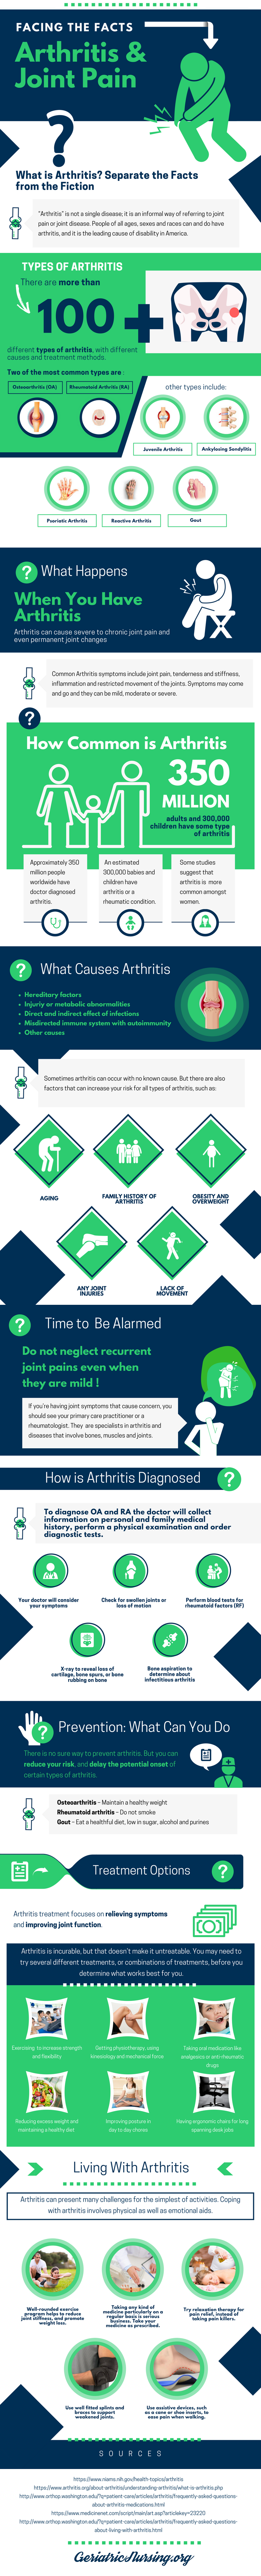 Facing the facts: Arthritis and Joint Pain Infographic